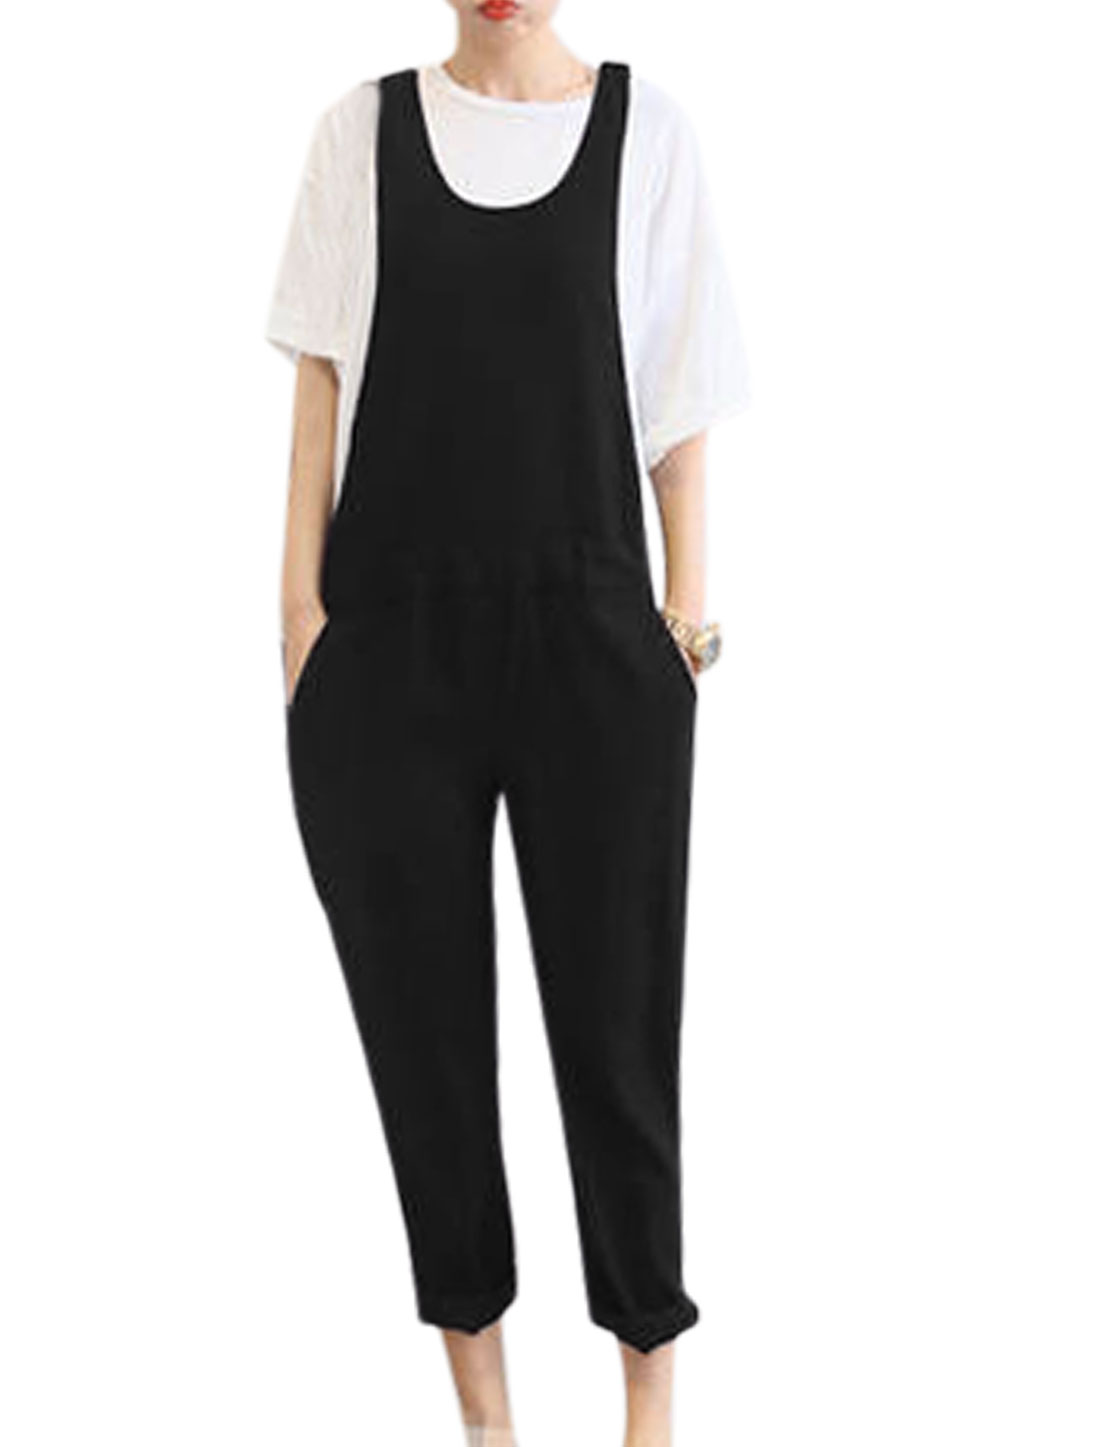 Woman Scoop Neck Sleeveless Belt Loop Concealed Zipper Jumpsuits Black S